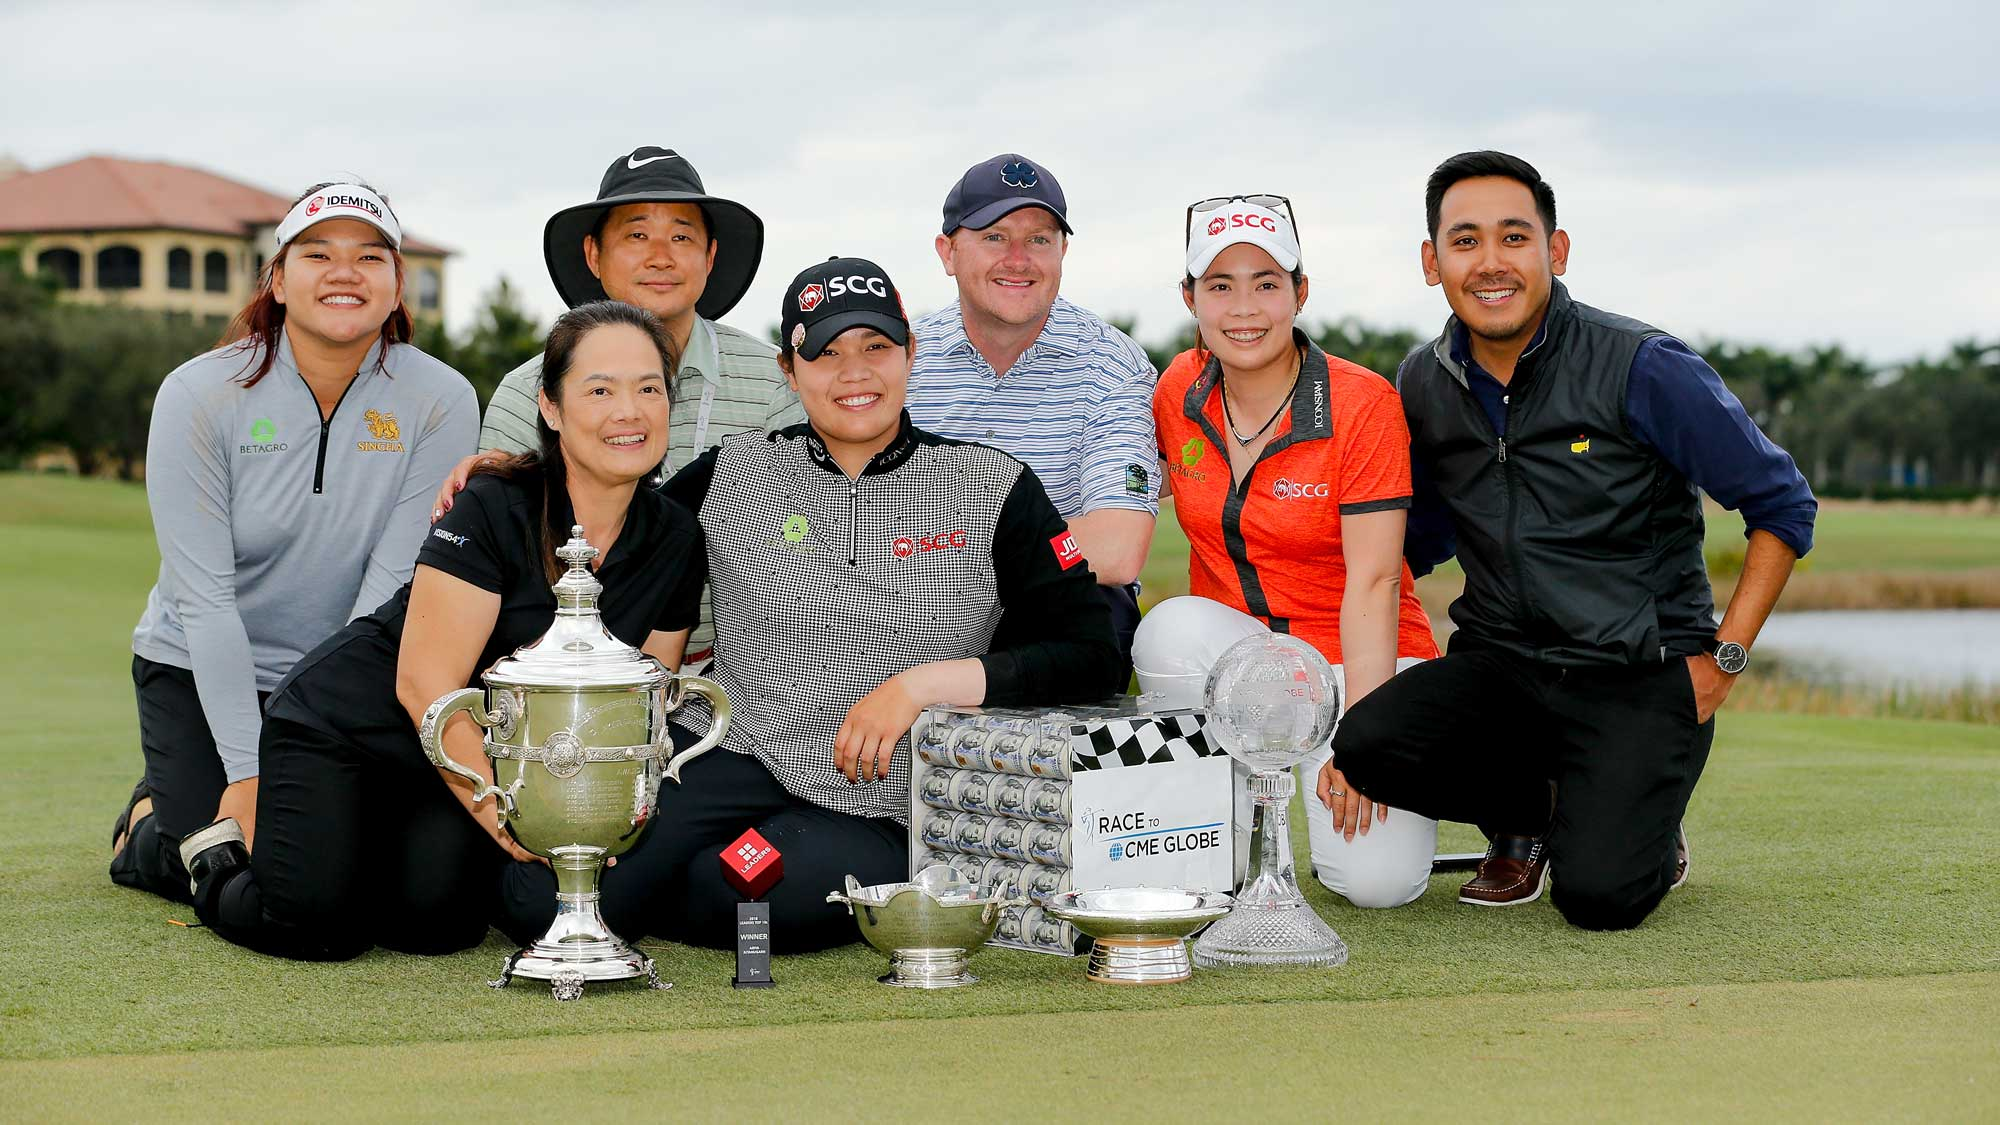 Ariya Jutanugarn of Thailand and her family pose for a photo with (left to right) the Rolex Player of the Year trophy, Leaders Top 10 Competition Trophy, Vare trophy, Rolex Annika Major award and the Race to the CME Globe trophy after the final round of the LPGA CME Group Tour Championship